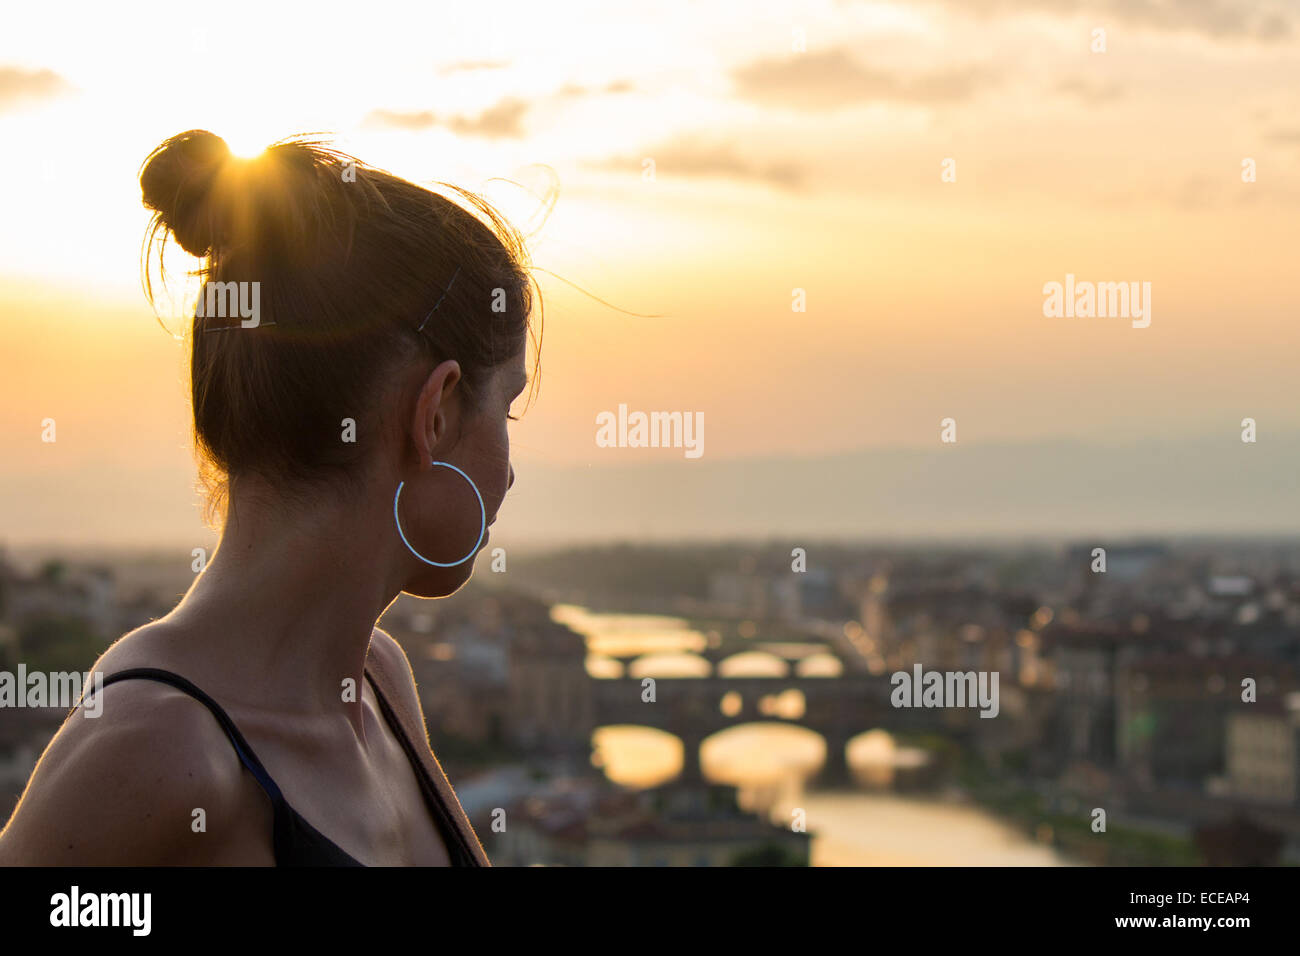 Italy, Tuscany, Young woman and old bridge at sunset - Stock Image